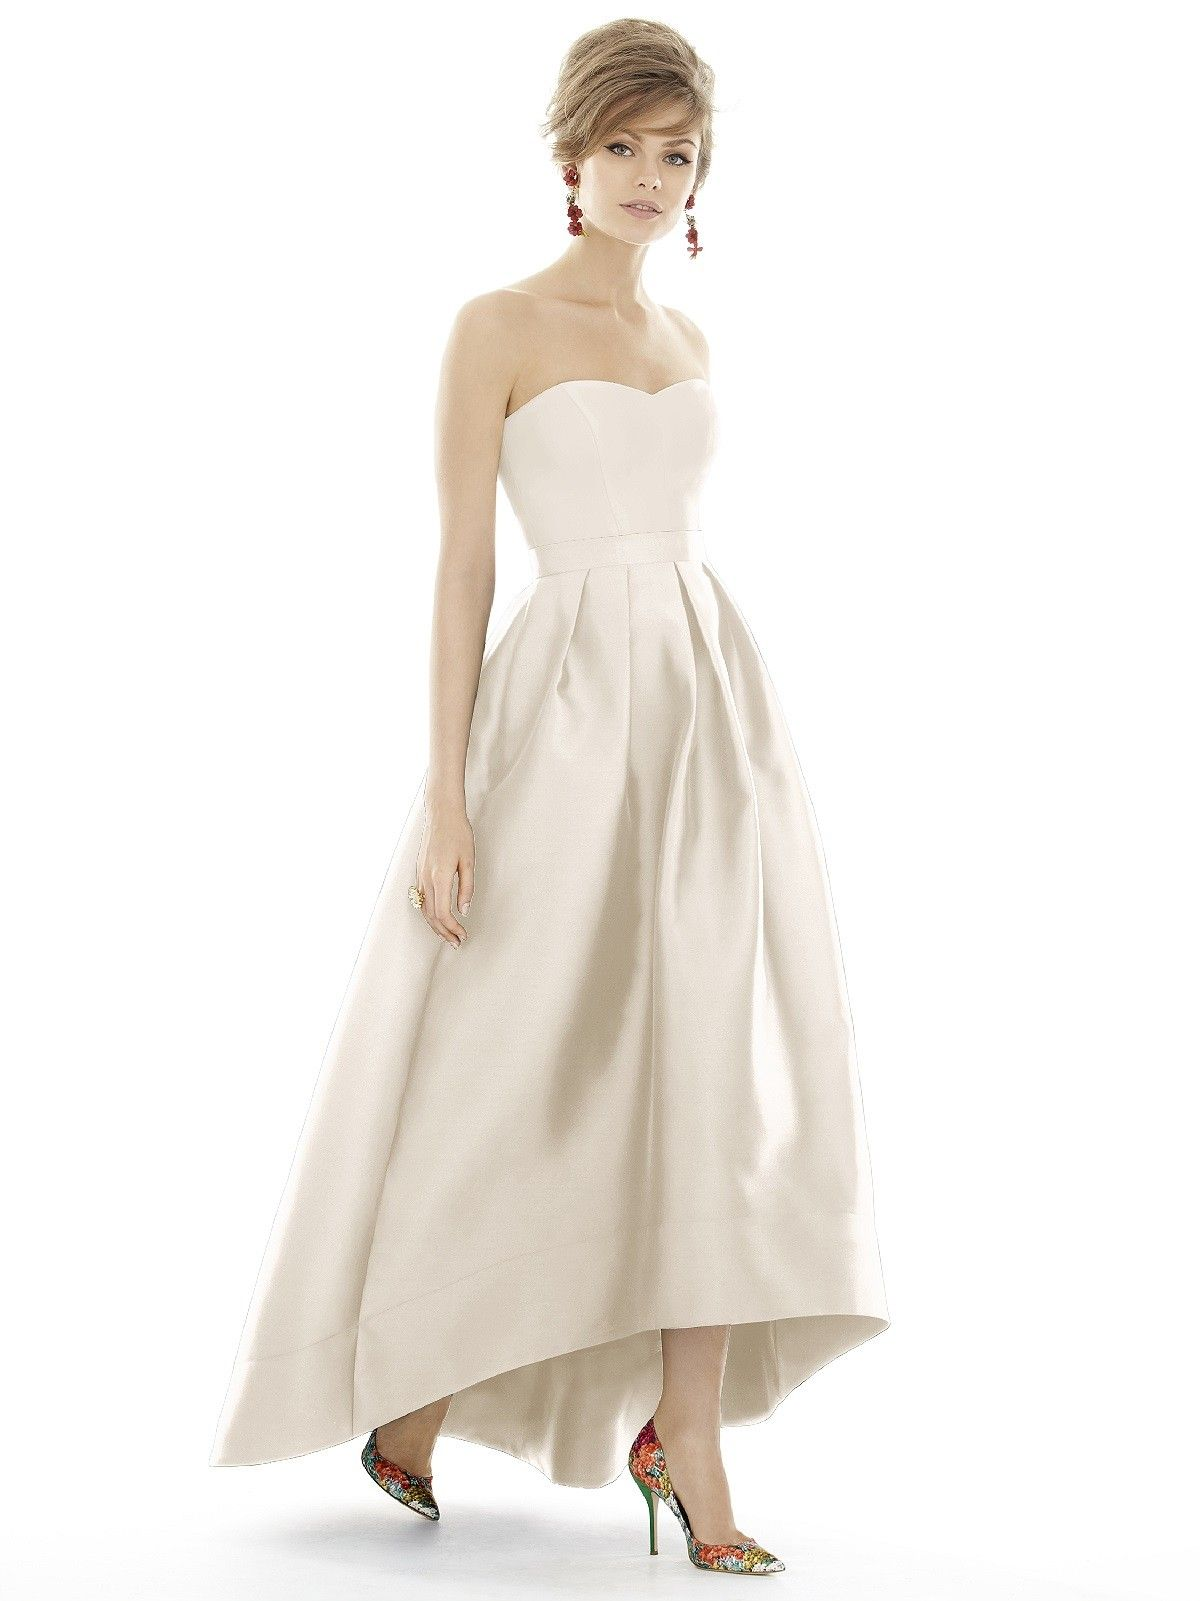 Alfred sung bridesmaid dresses style d699 d699 20064 alfred sung bridesmaid dresses style d699 d699 20064 would make a ombrellifo Images